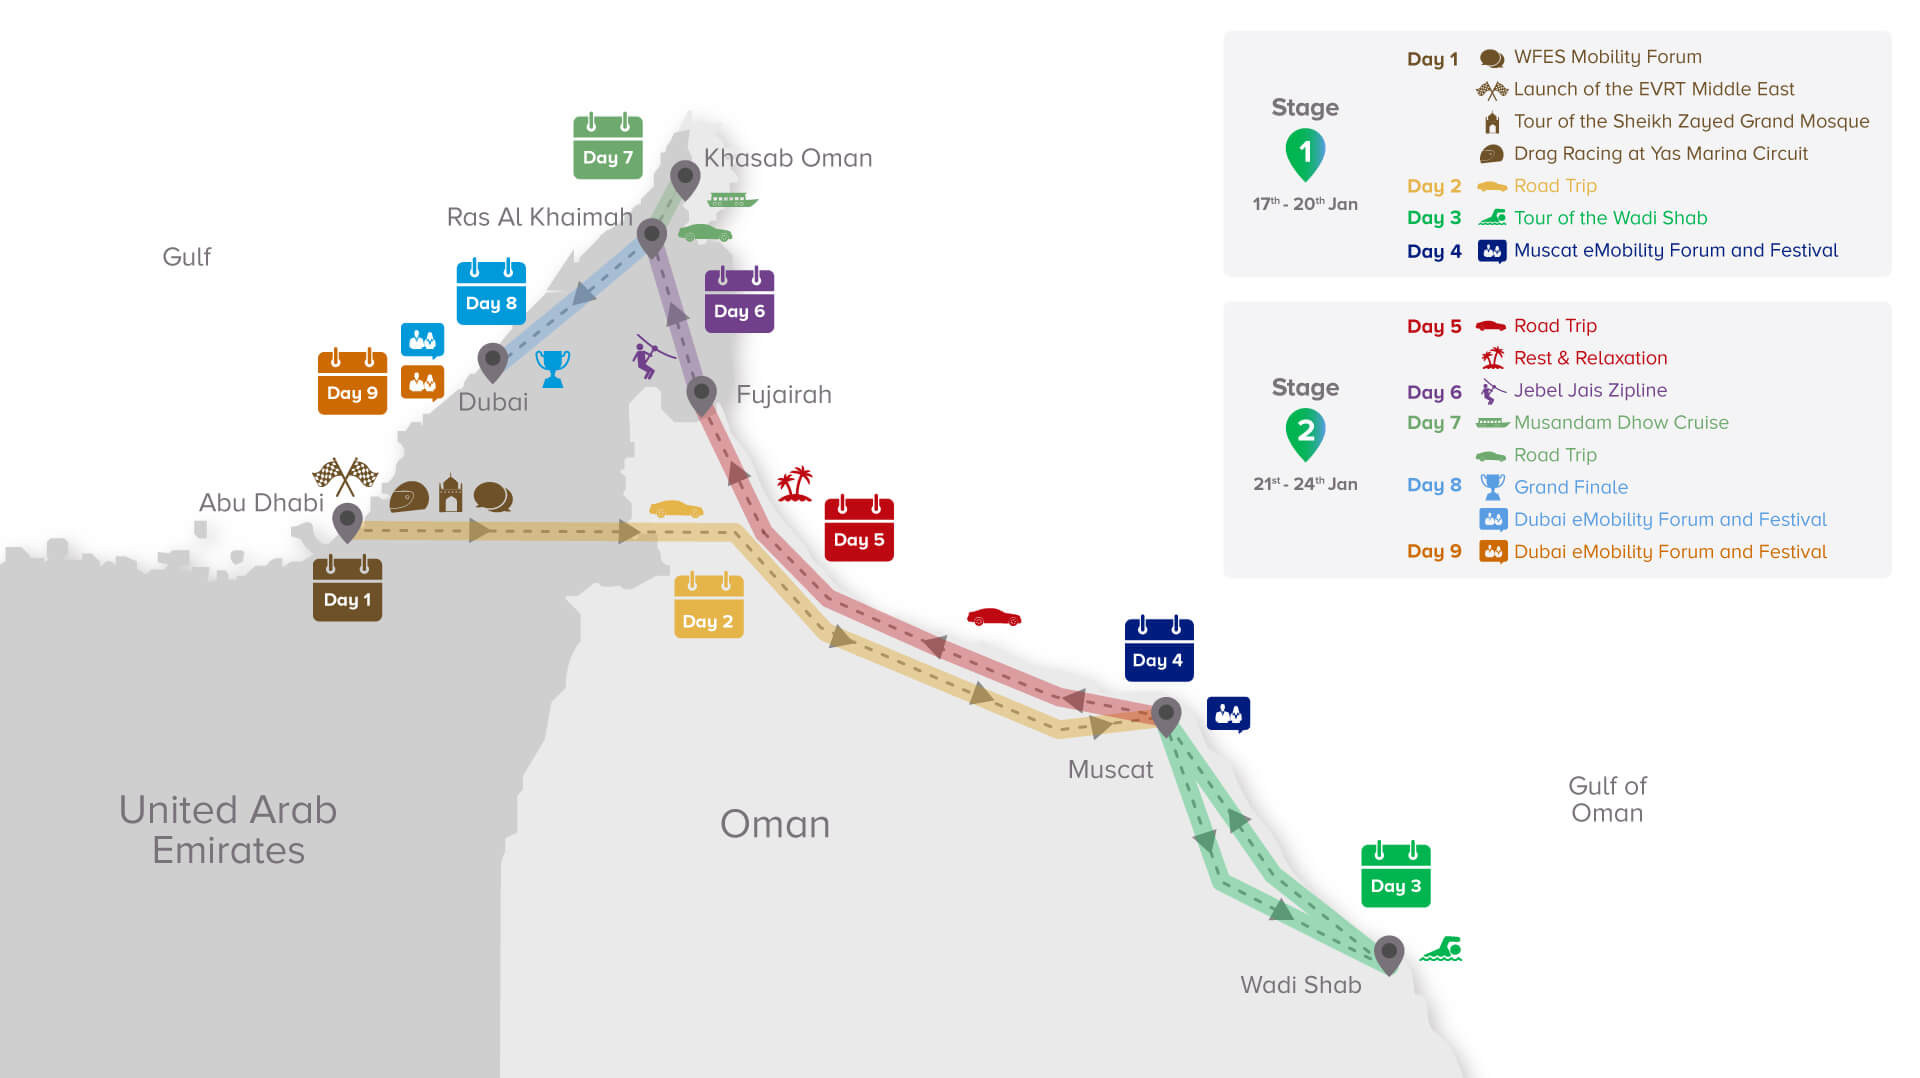 Global EVRT Middle East Map 2019